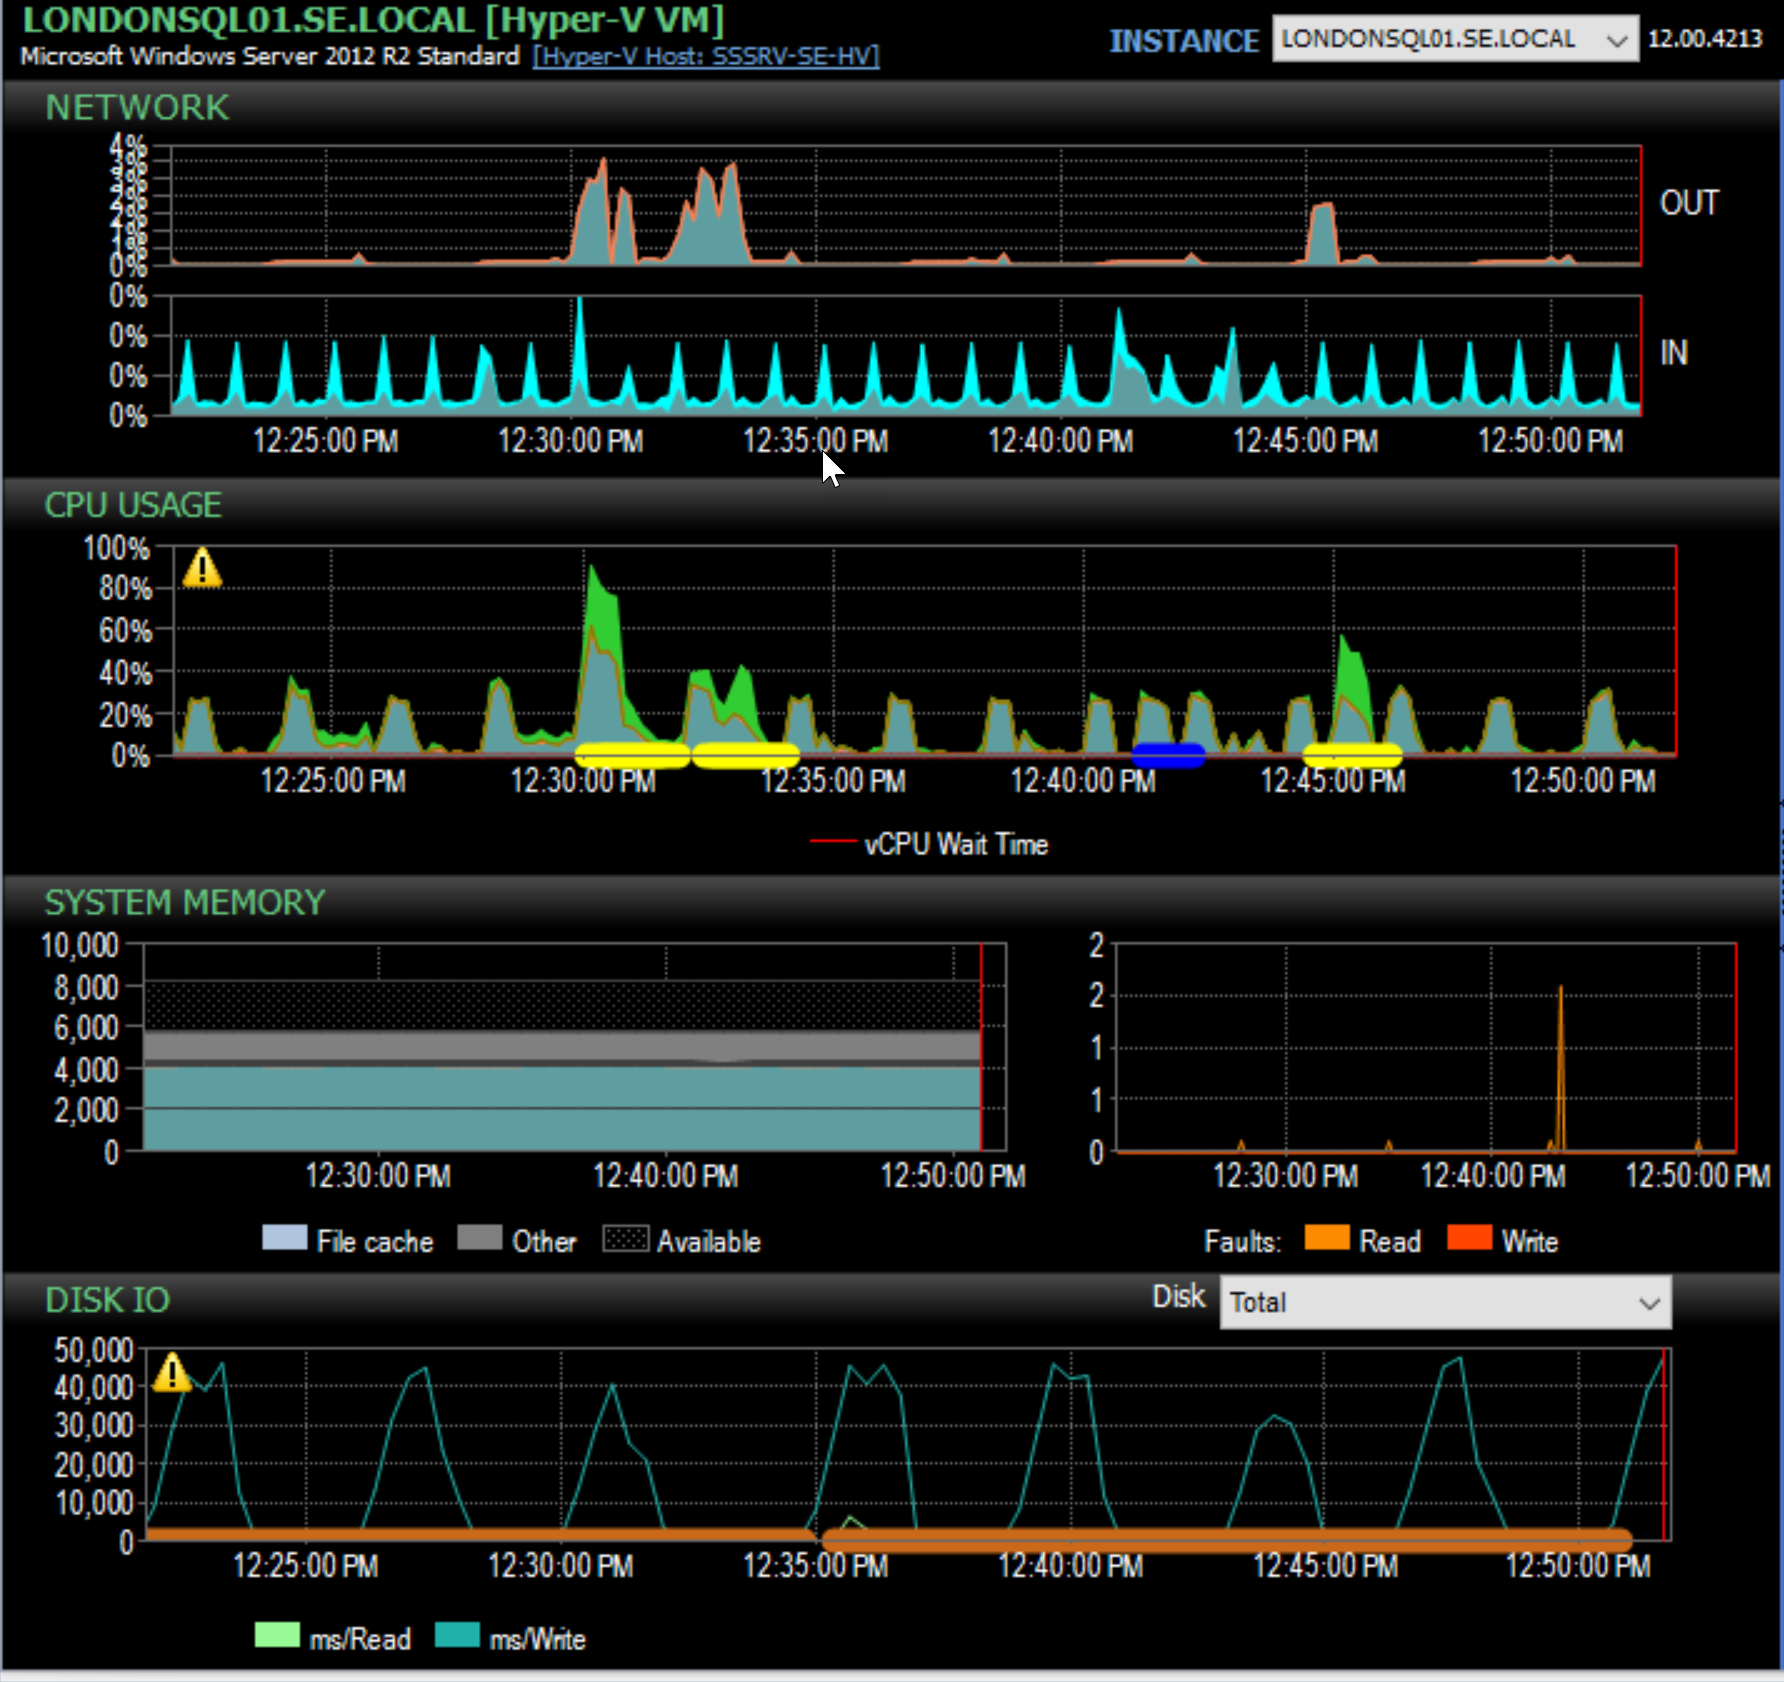 SentryOne Peformance Analysis Dashboard left side graphs